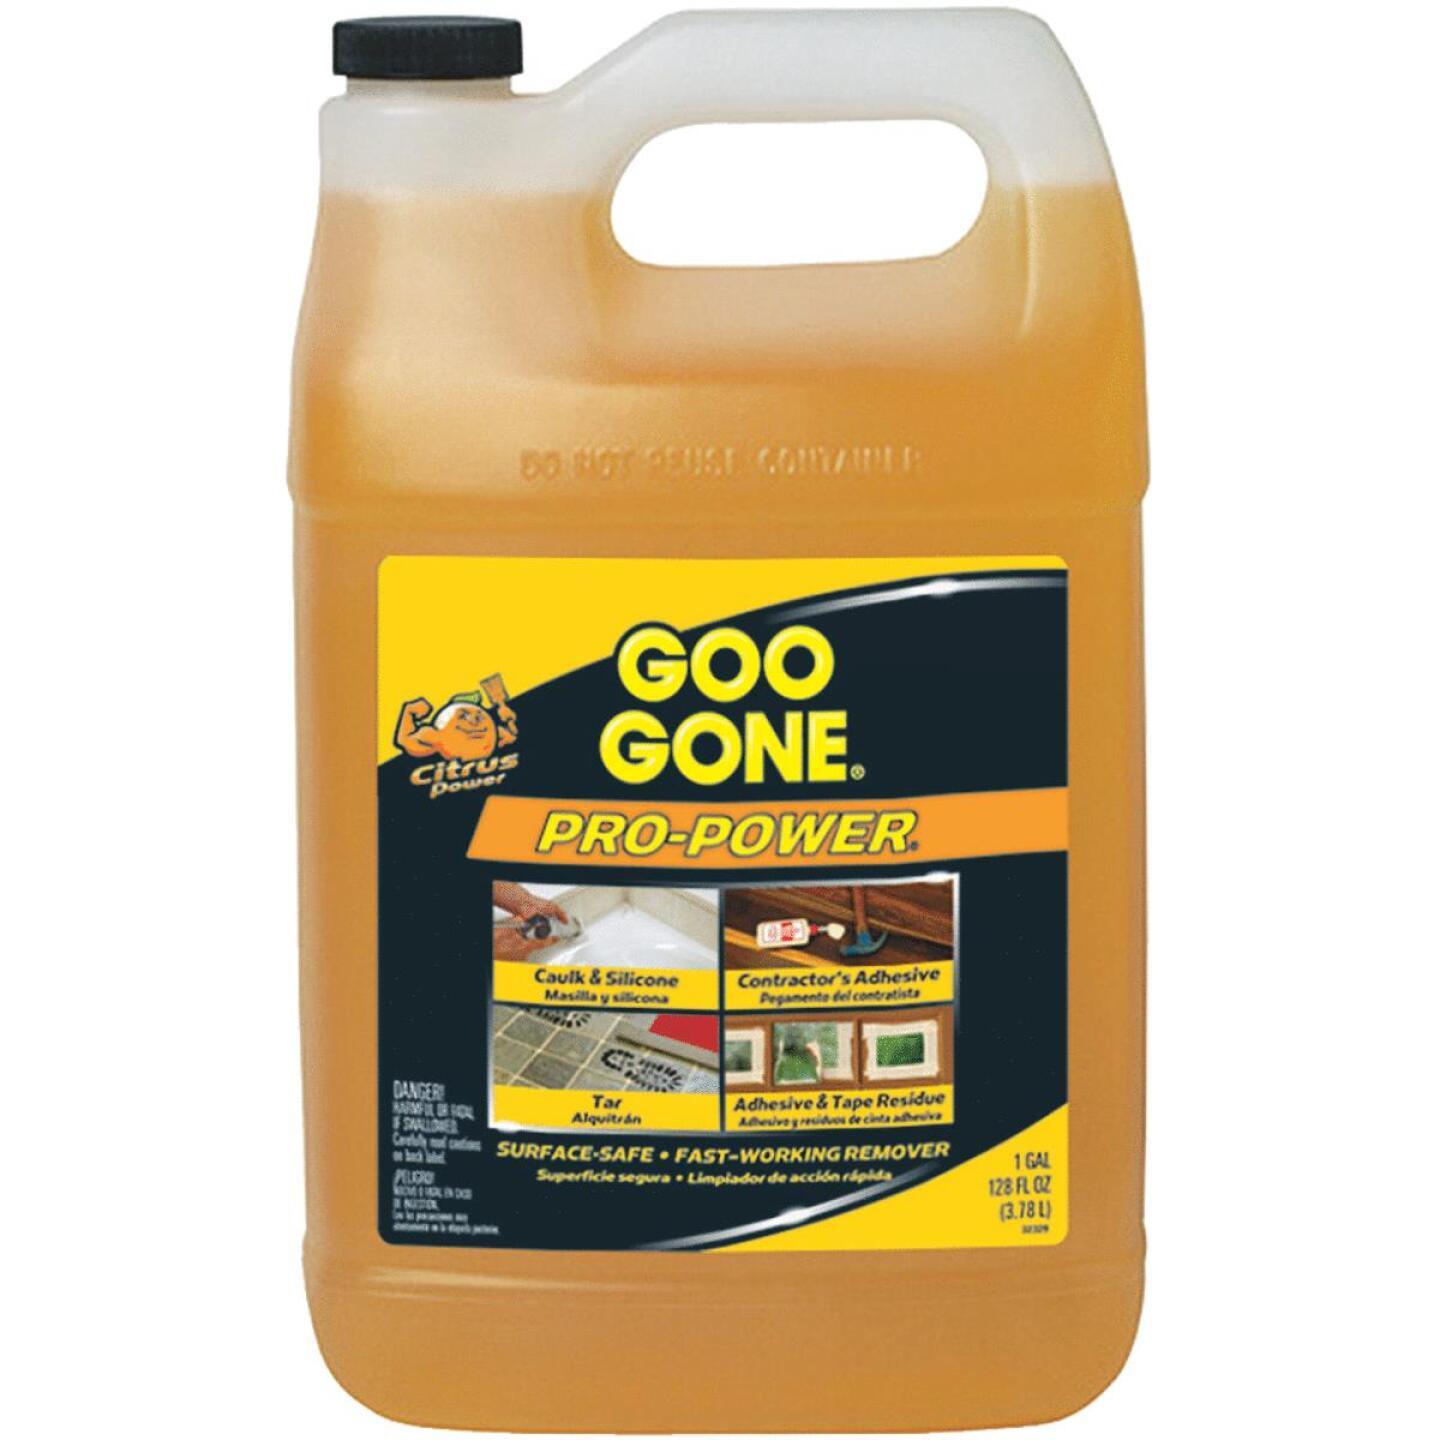 Goo Gone 1 Gal. Pro-Power Adhesive Remover Image 126